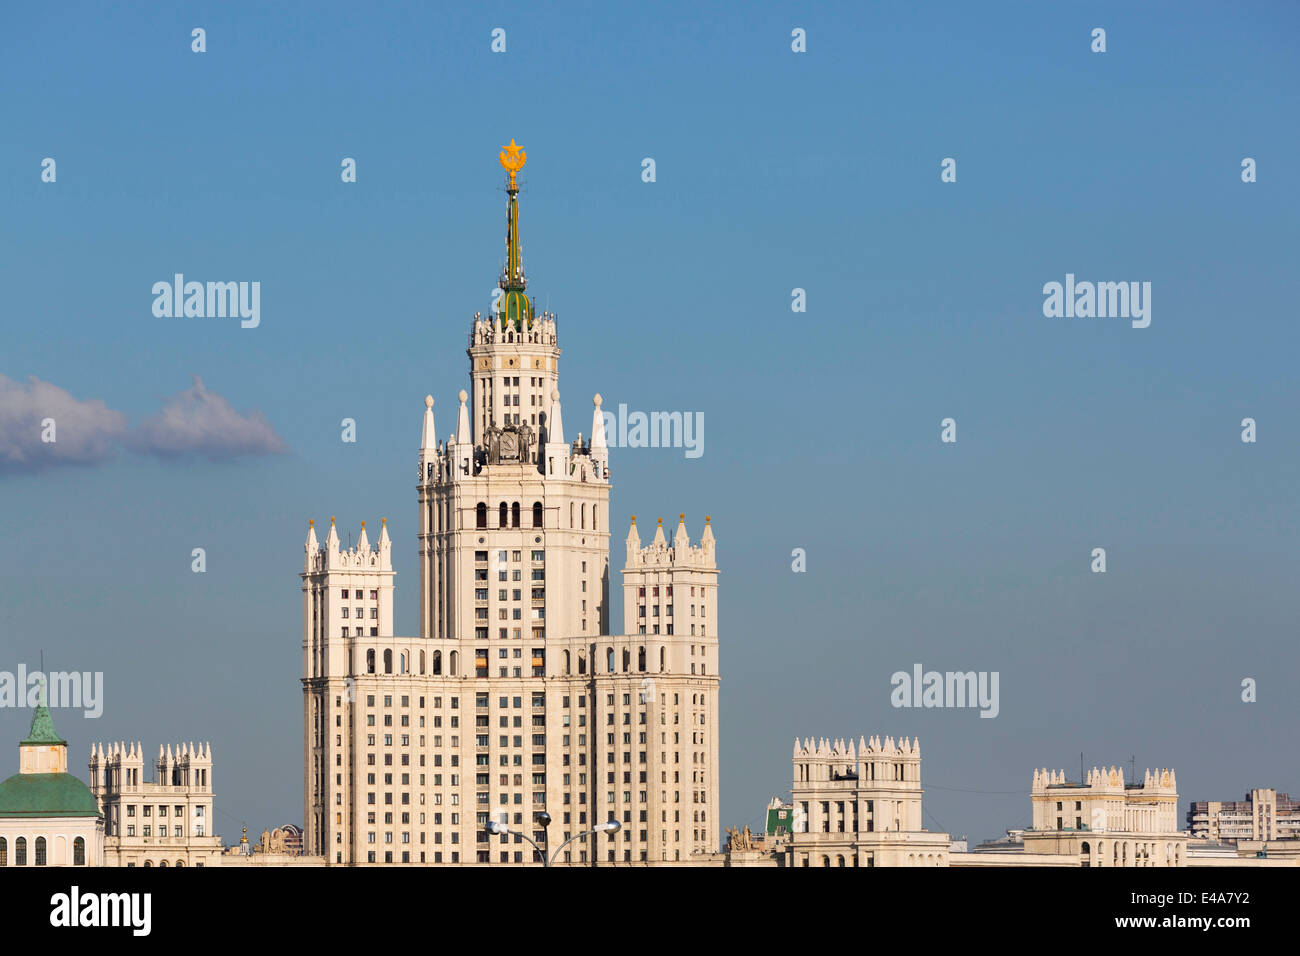 Moscow skyline with Stalanist-Gothic skyscraper, Moscow, Russia, Europe - Stock Image